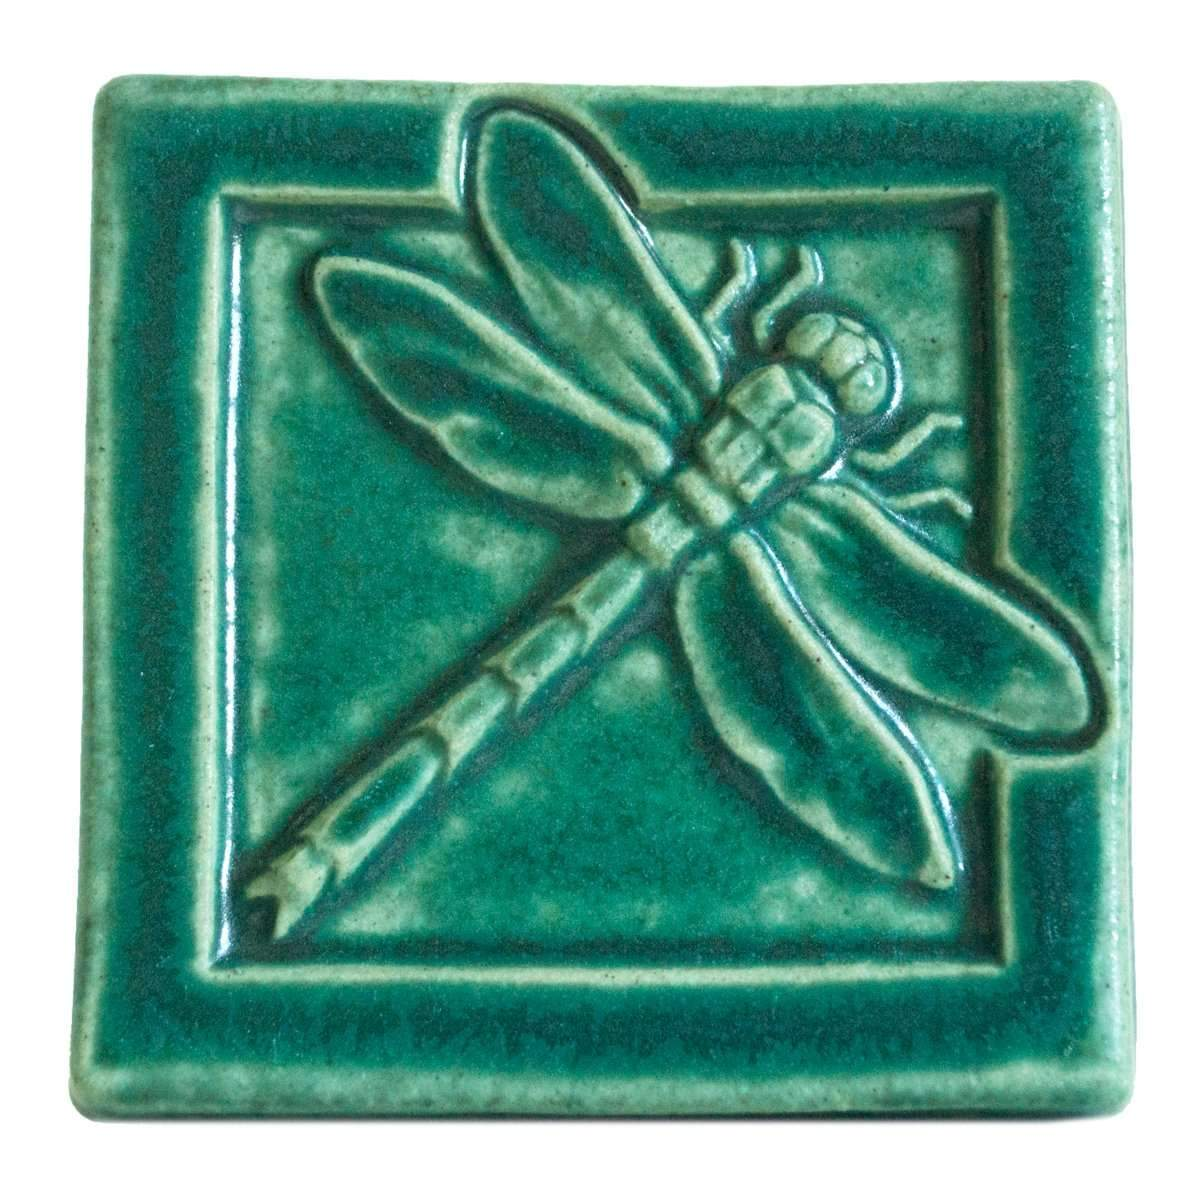 4x4 Dragonfly - Pewabic Green - Pure Detroit